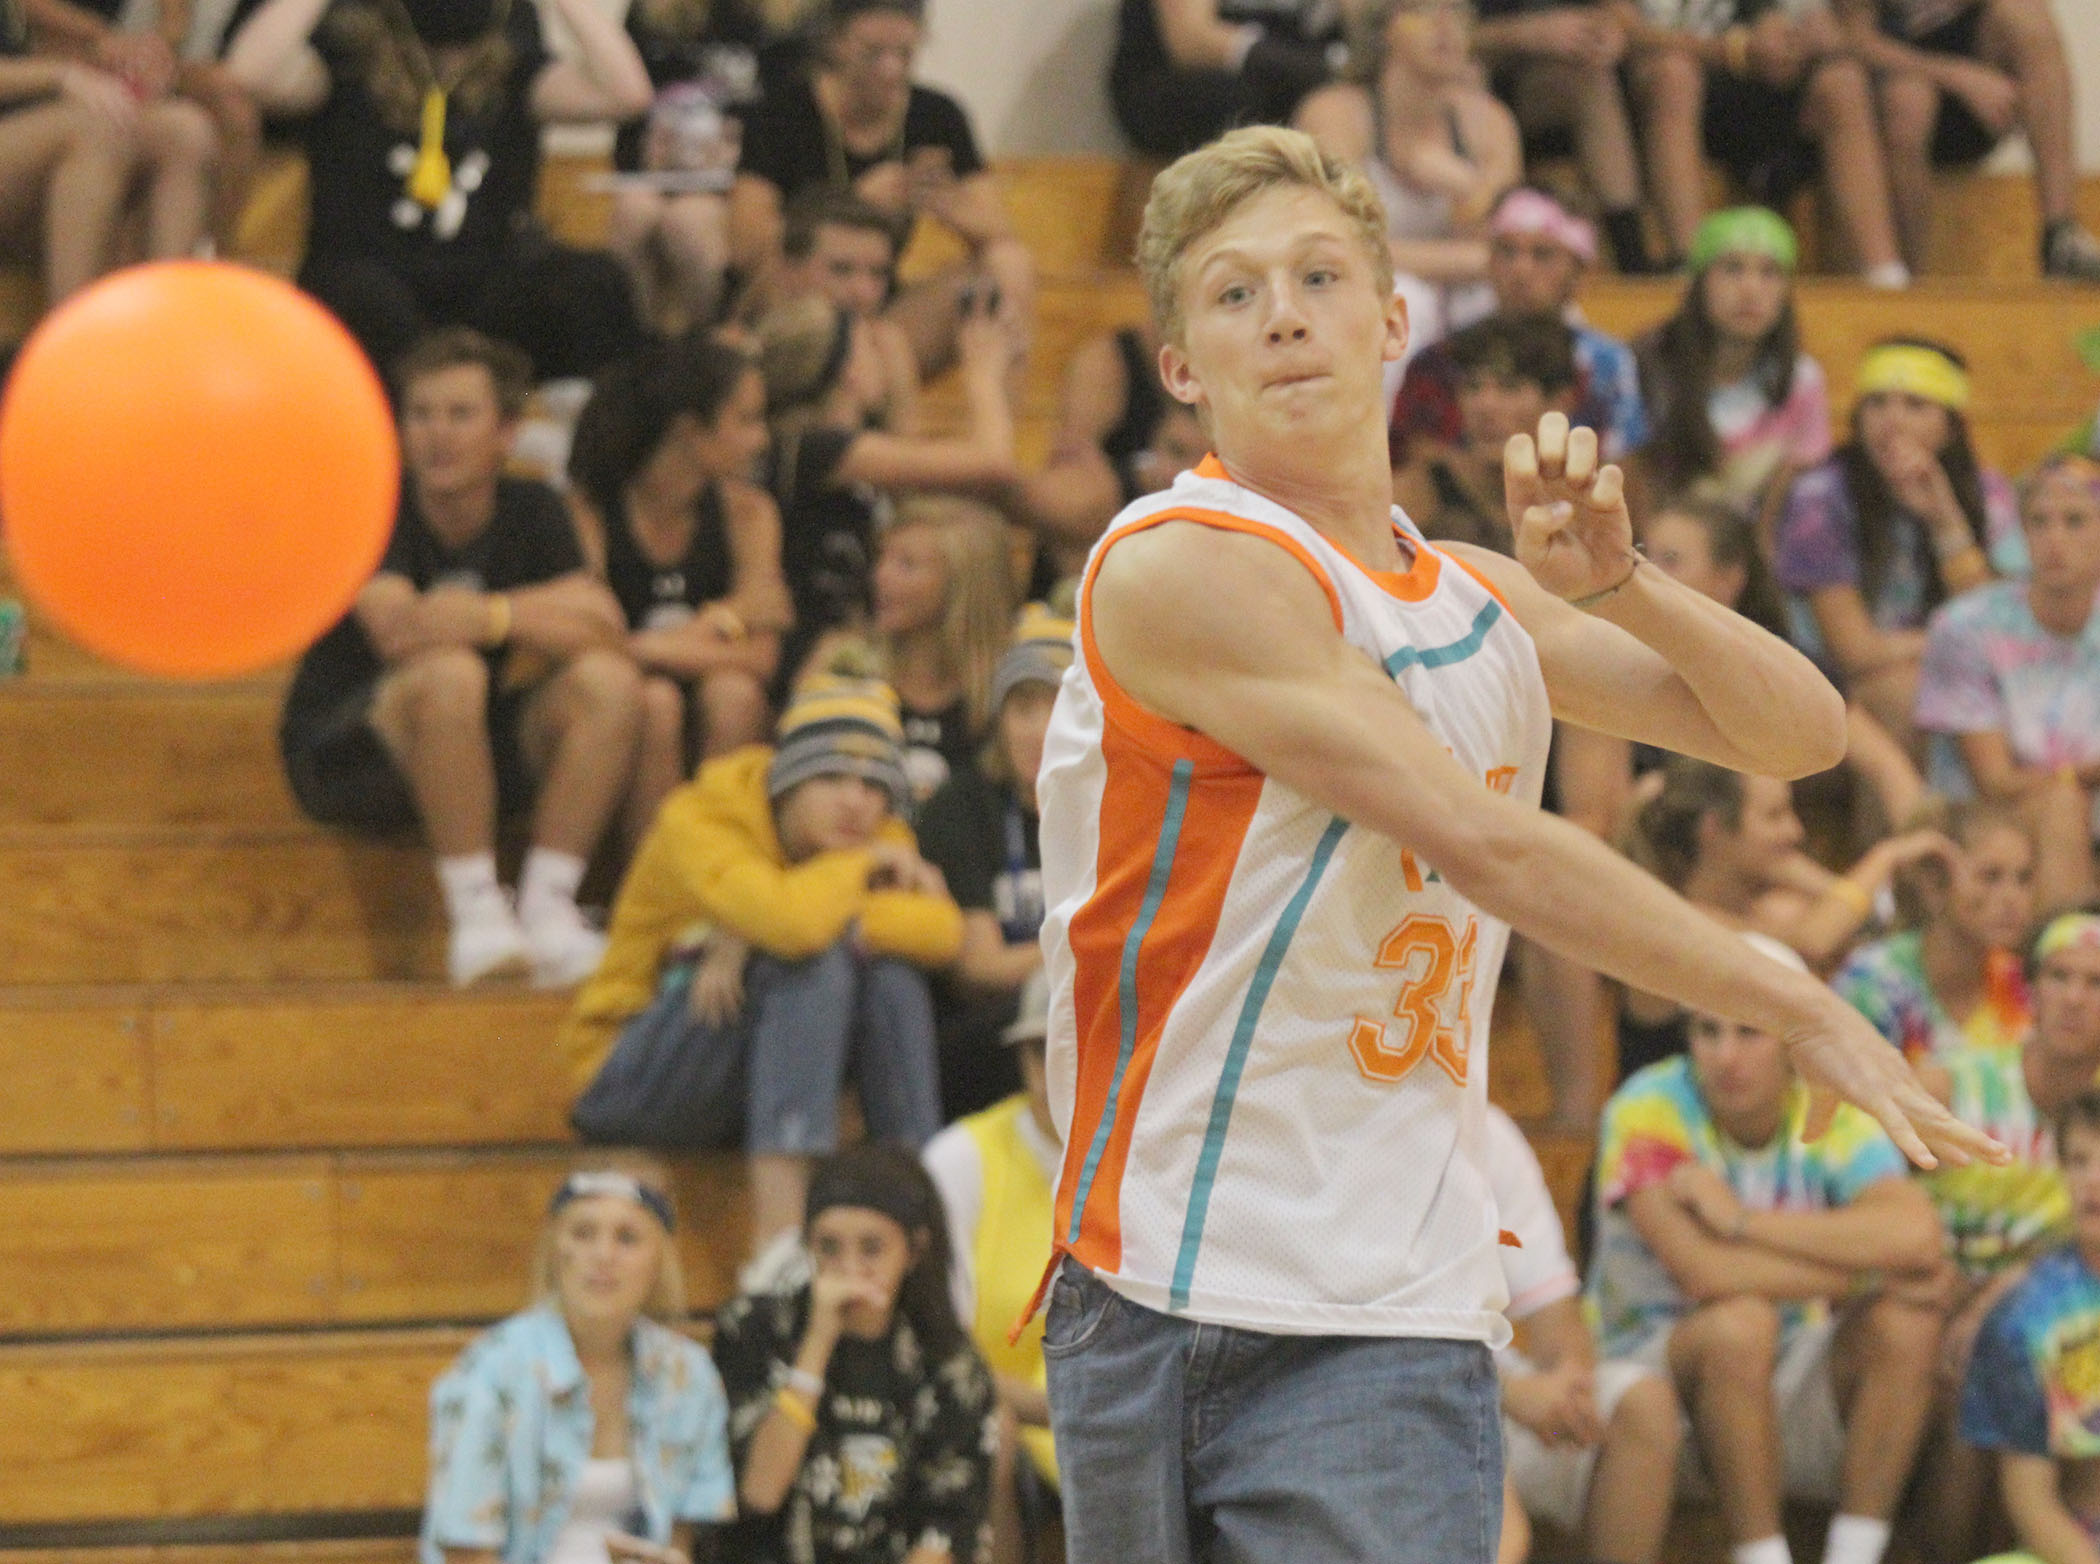 Junior Jack McFarlane tosses a dodgeball in the annual homecoming tournament.